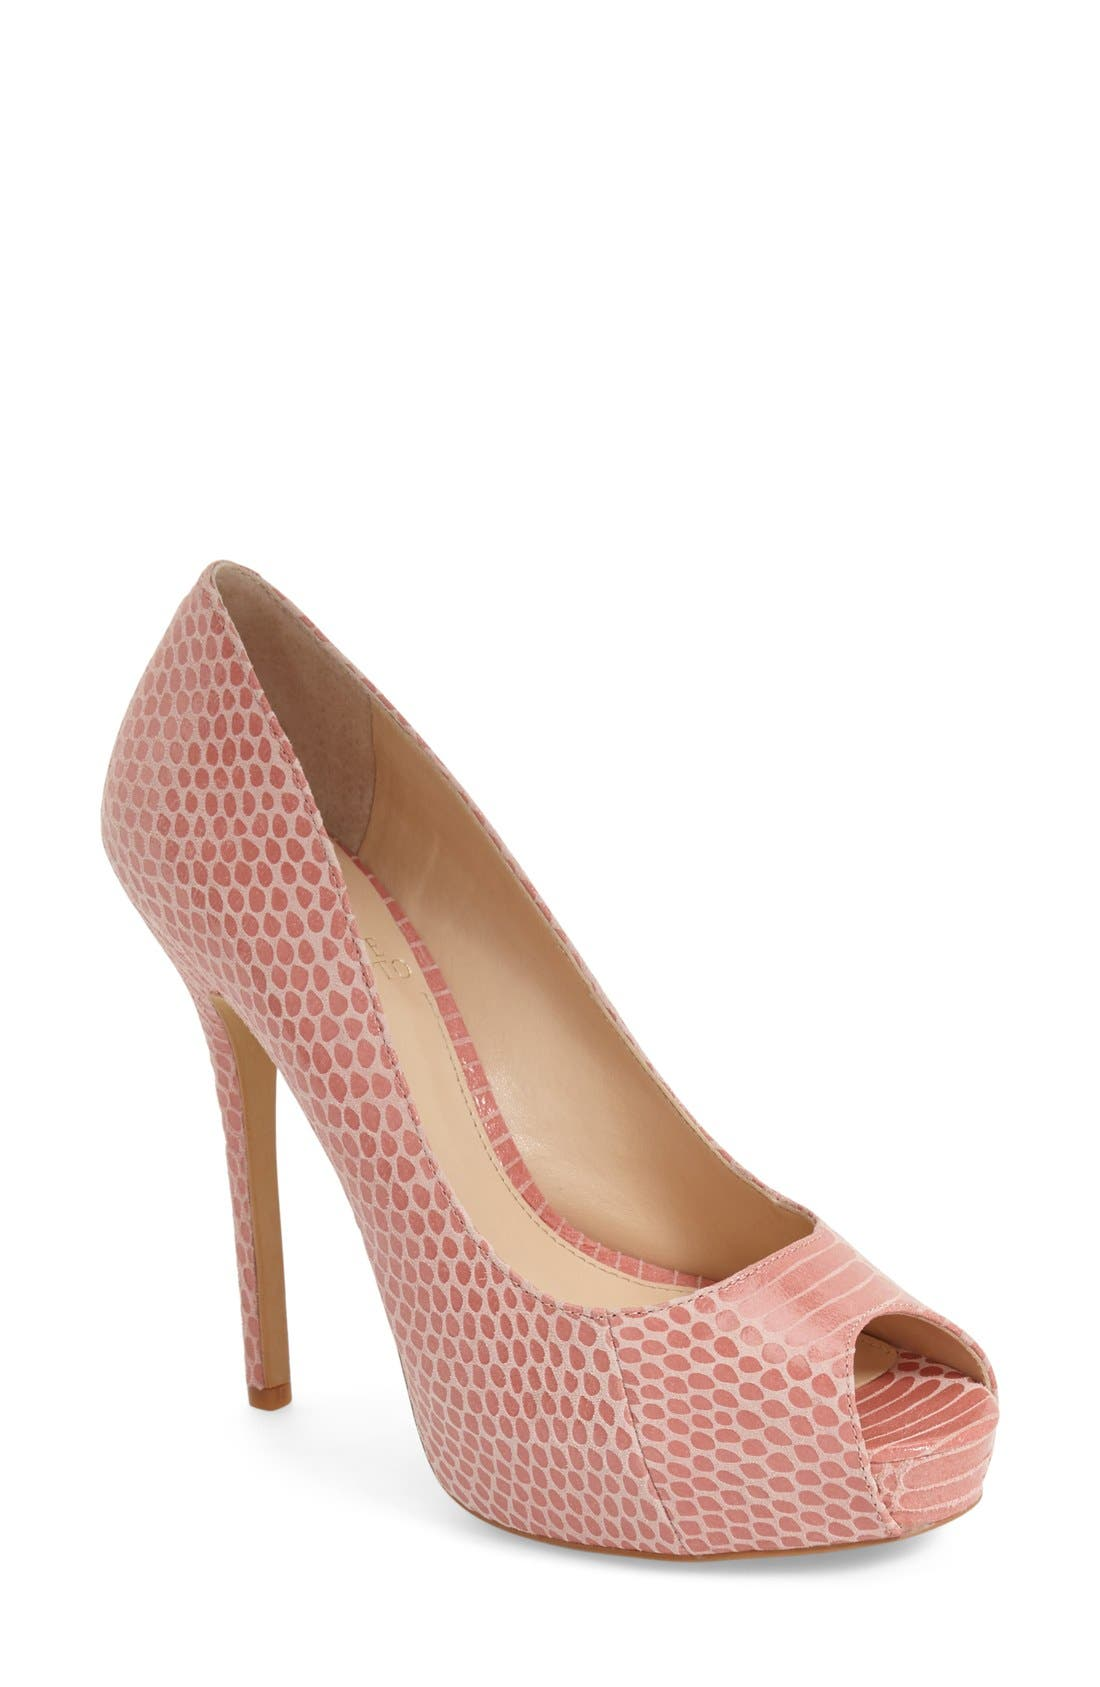 Alternate Image 1 Selected - Vince Camuto 'Lormina' Peep Toe Pump (Women)